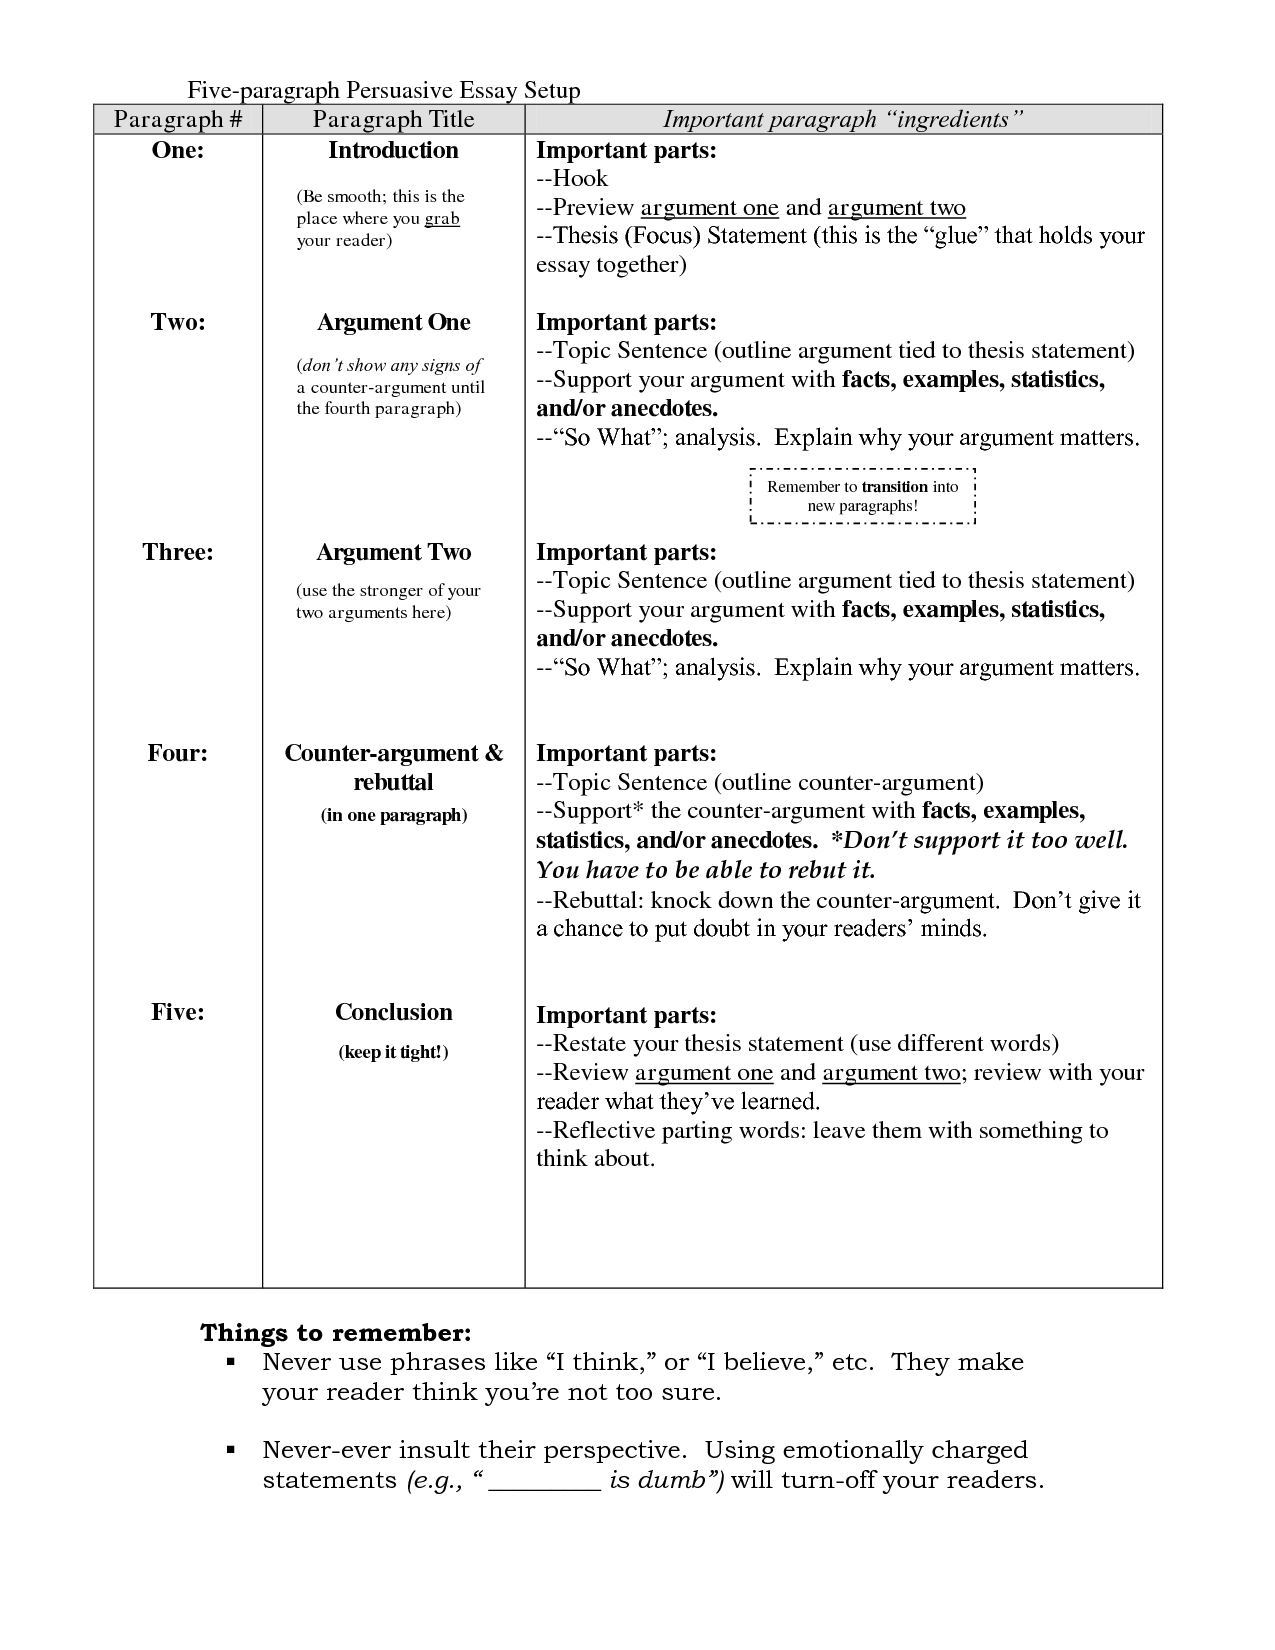 020 One Paragraph Essay How Important Is Thesis Statement In An To Write Introduction For Informative N5psy Argumentative About Book Pdf Yourselfs Start Analytical Opinion Best A Ppt Full